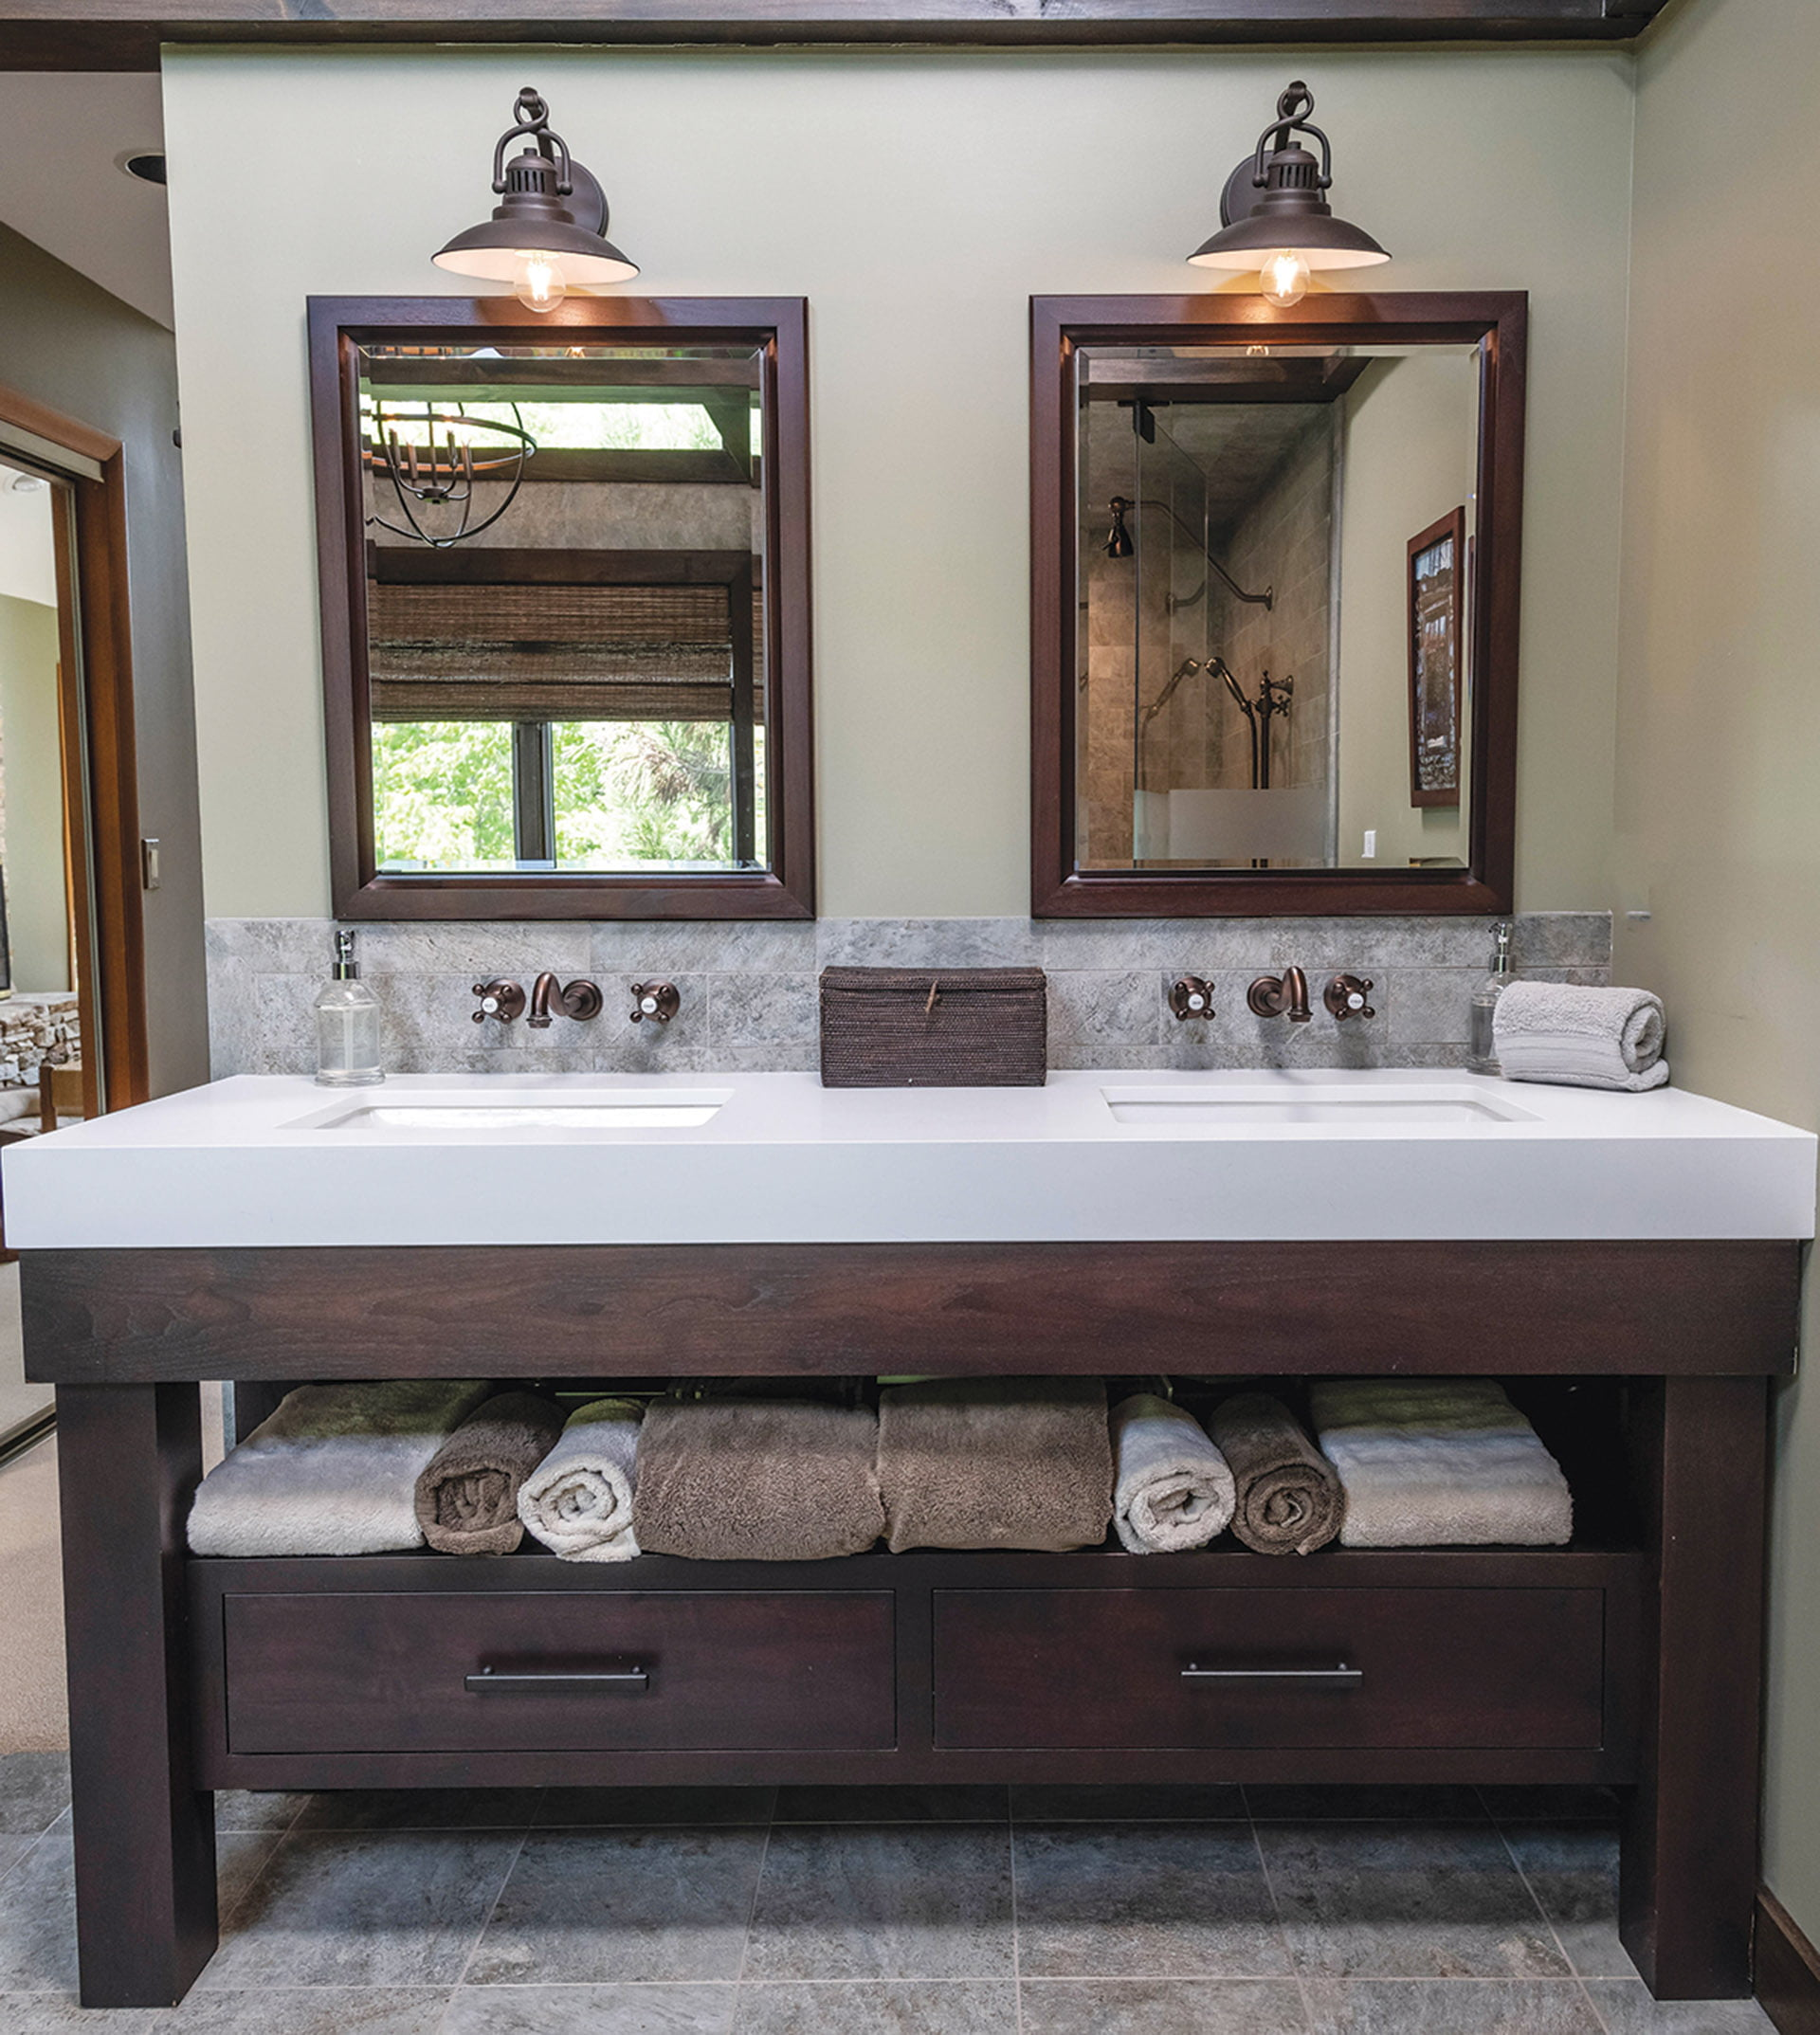 Vanity topped with thick quartz counter